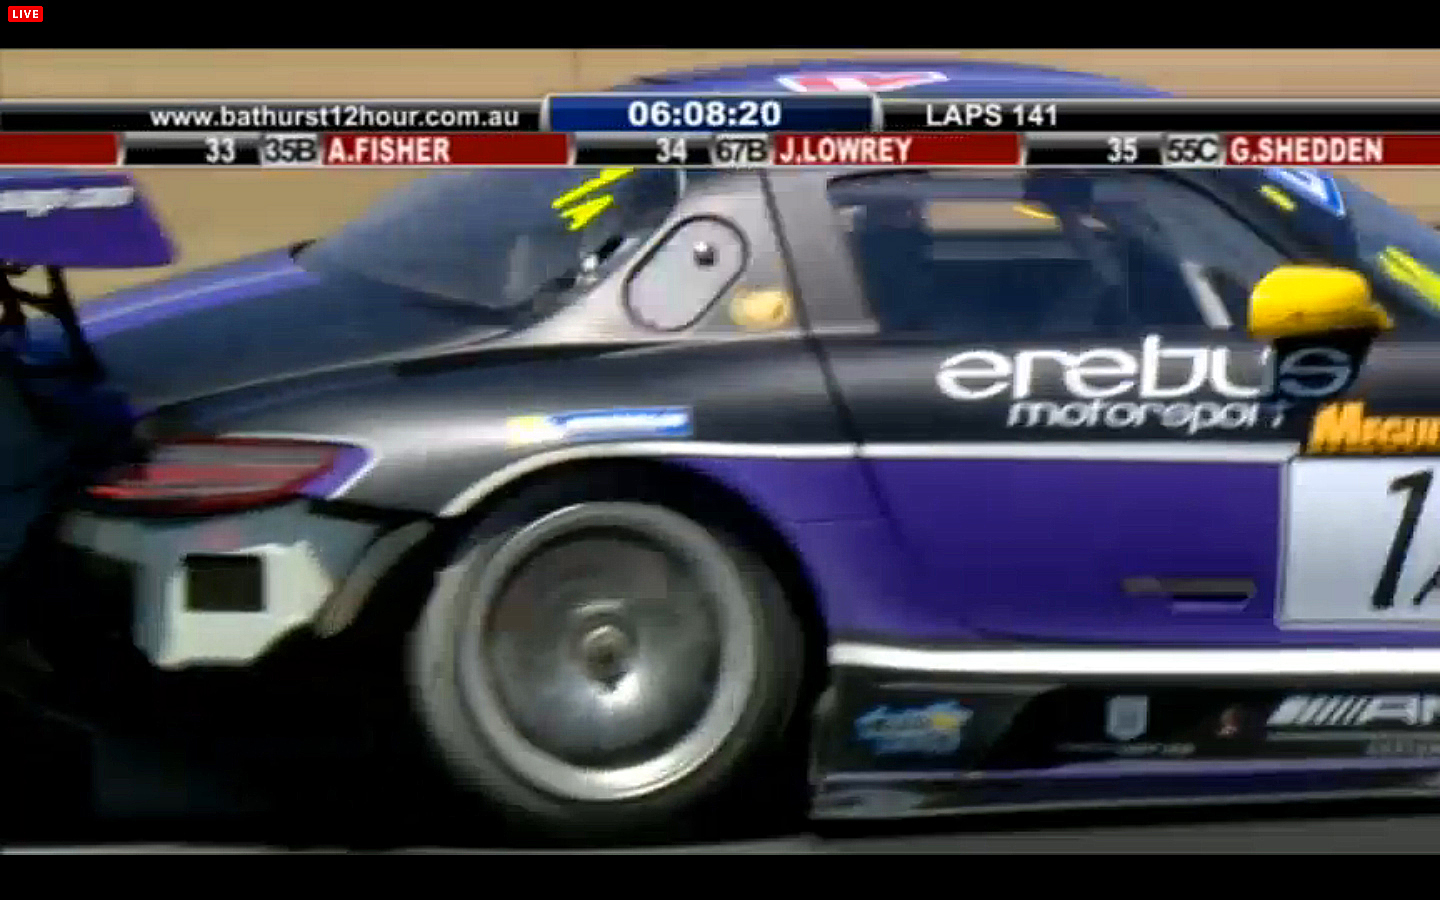 The #1 Mercedes is missing some of its right rear fender after going off at Skyline. (bathurst12hour.com.au)